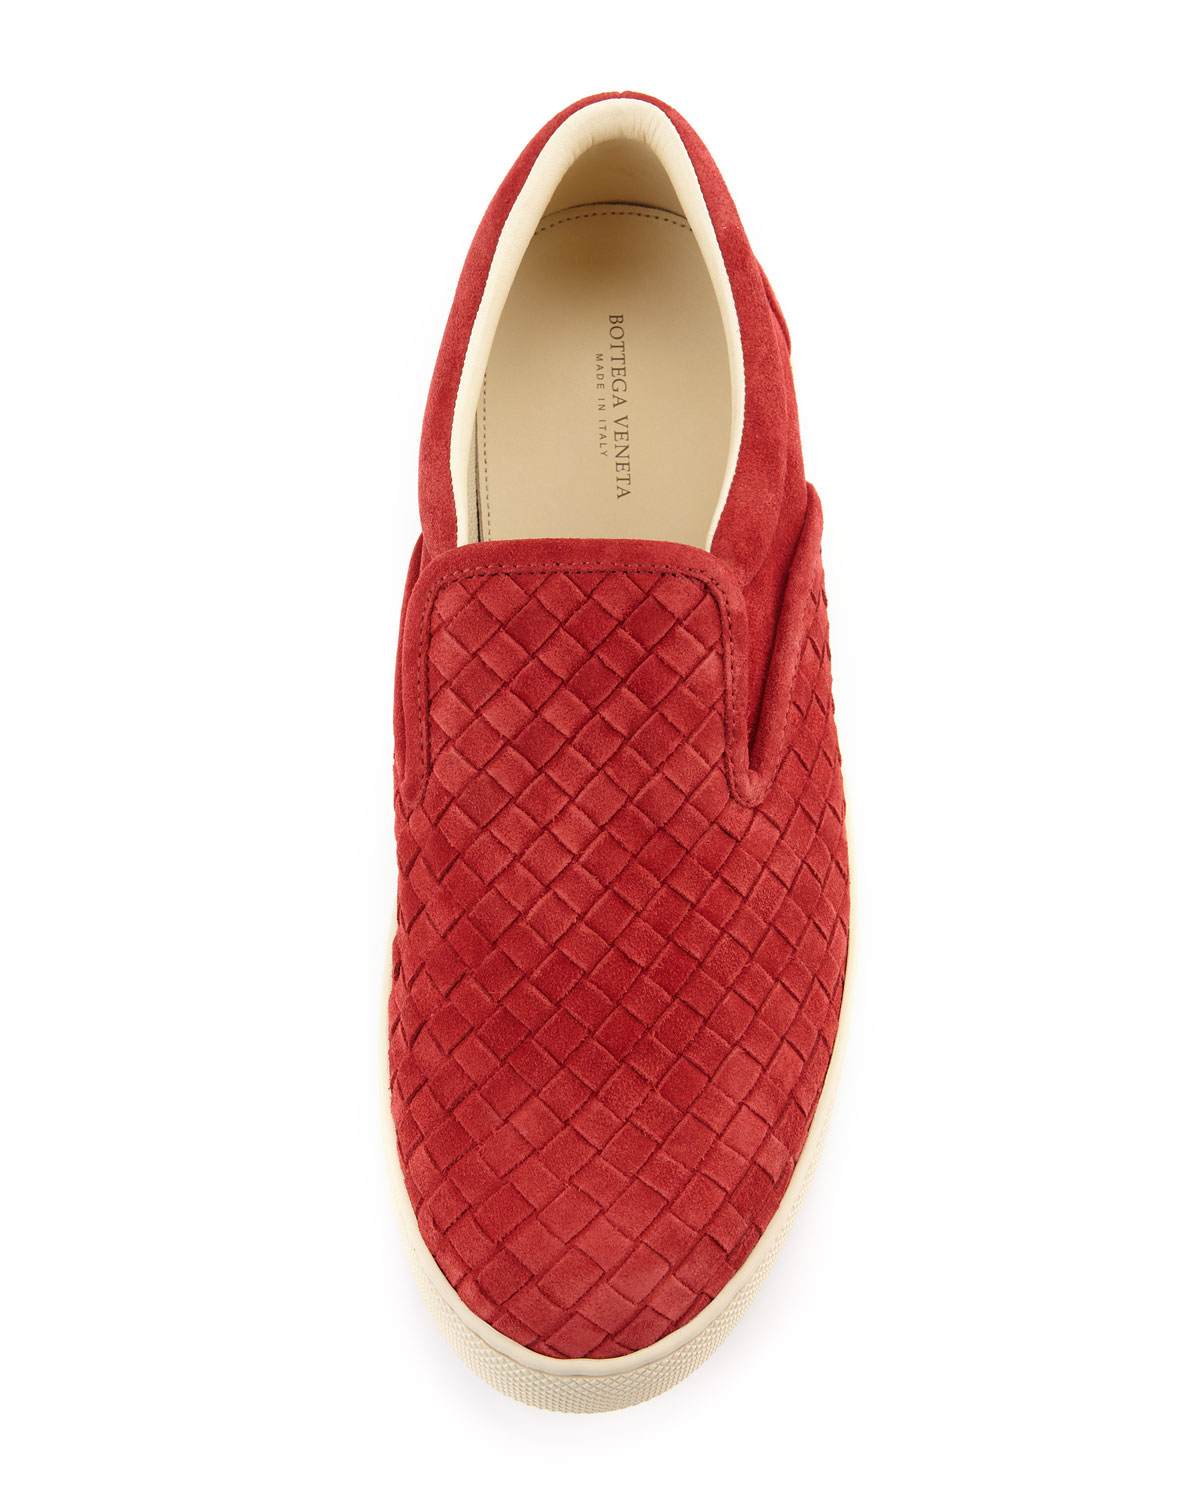 Bottega Veneta Mens Shoes Uk